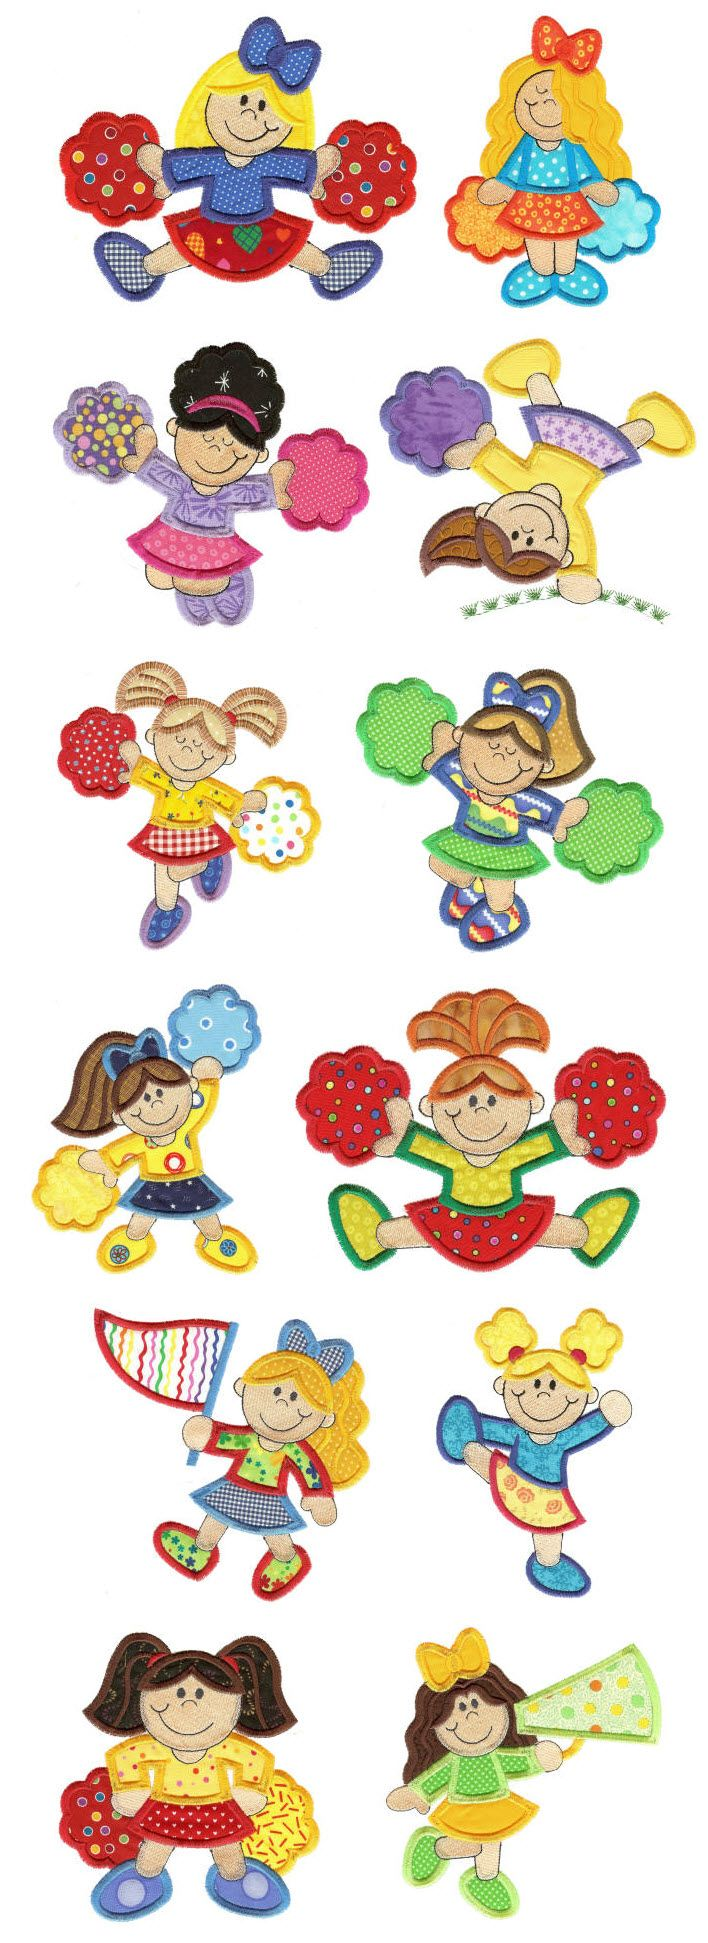 Embroidery | Free Machine Embroidery Designs | Cheerleaders Applique